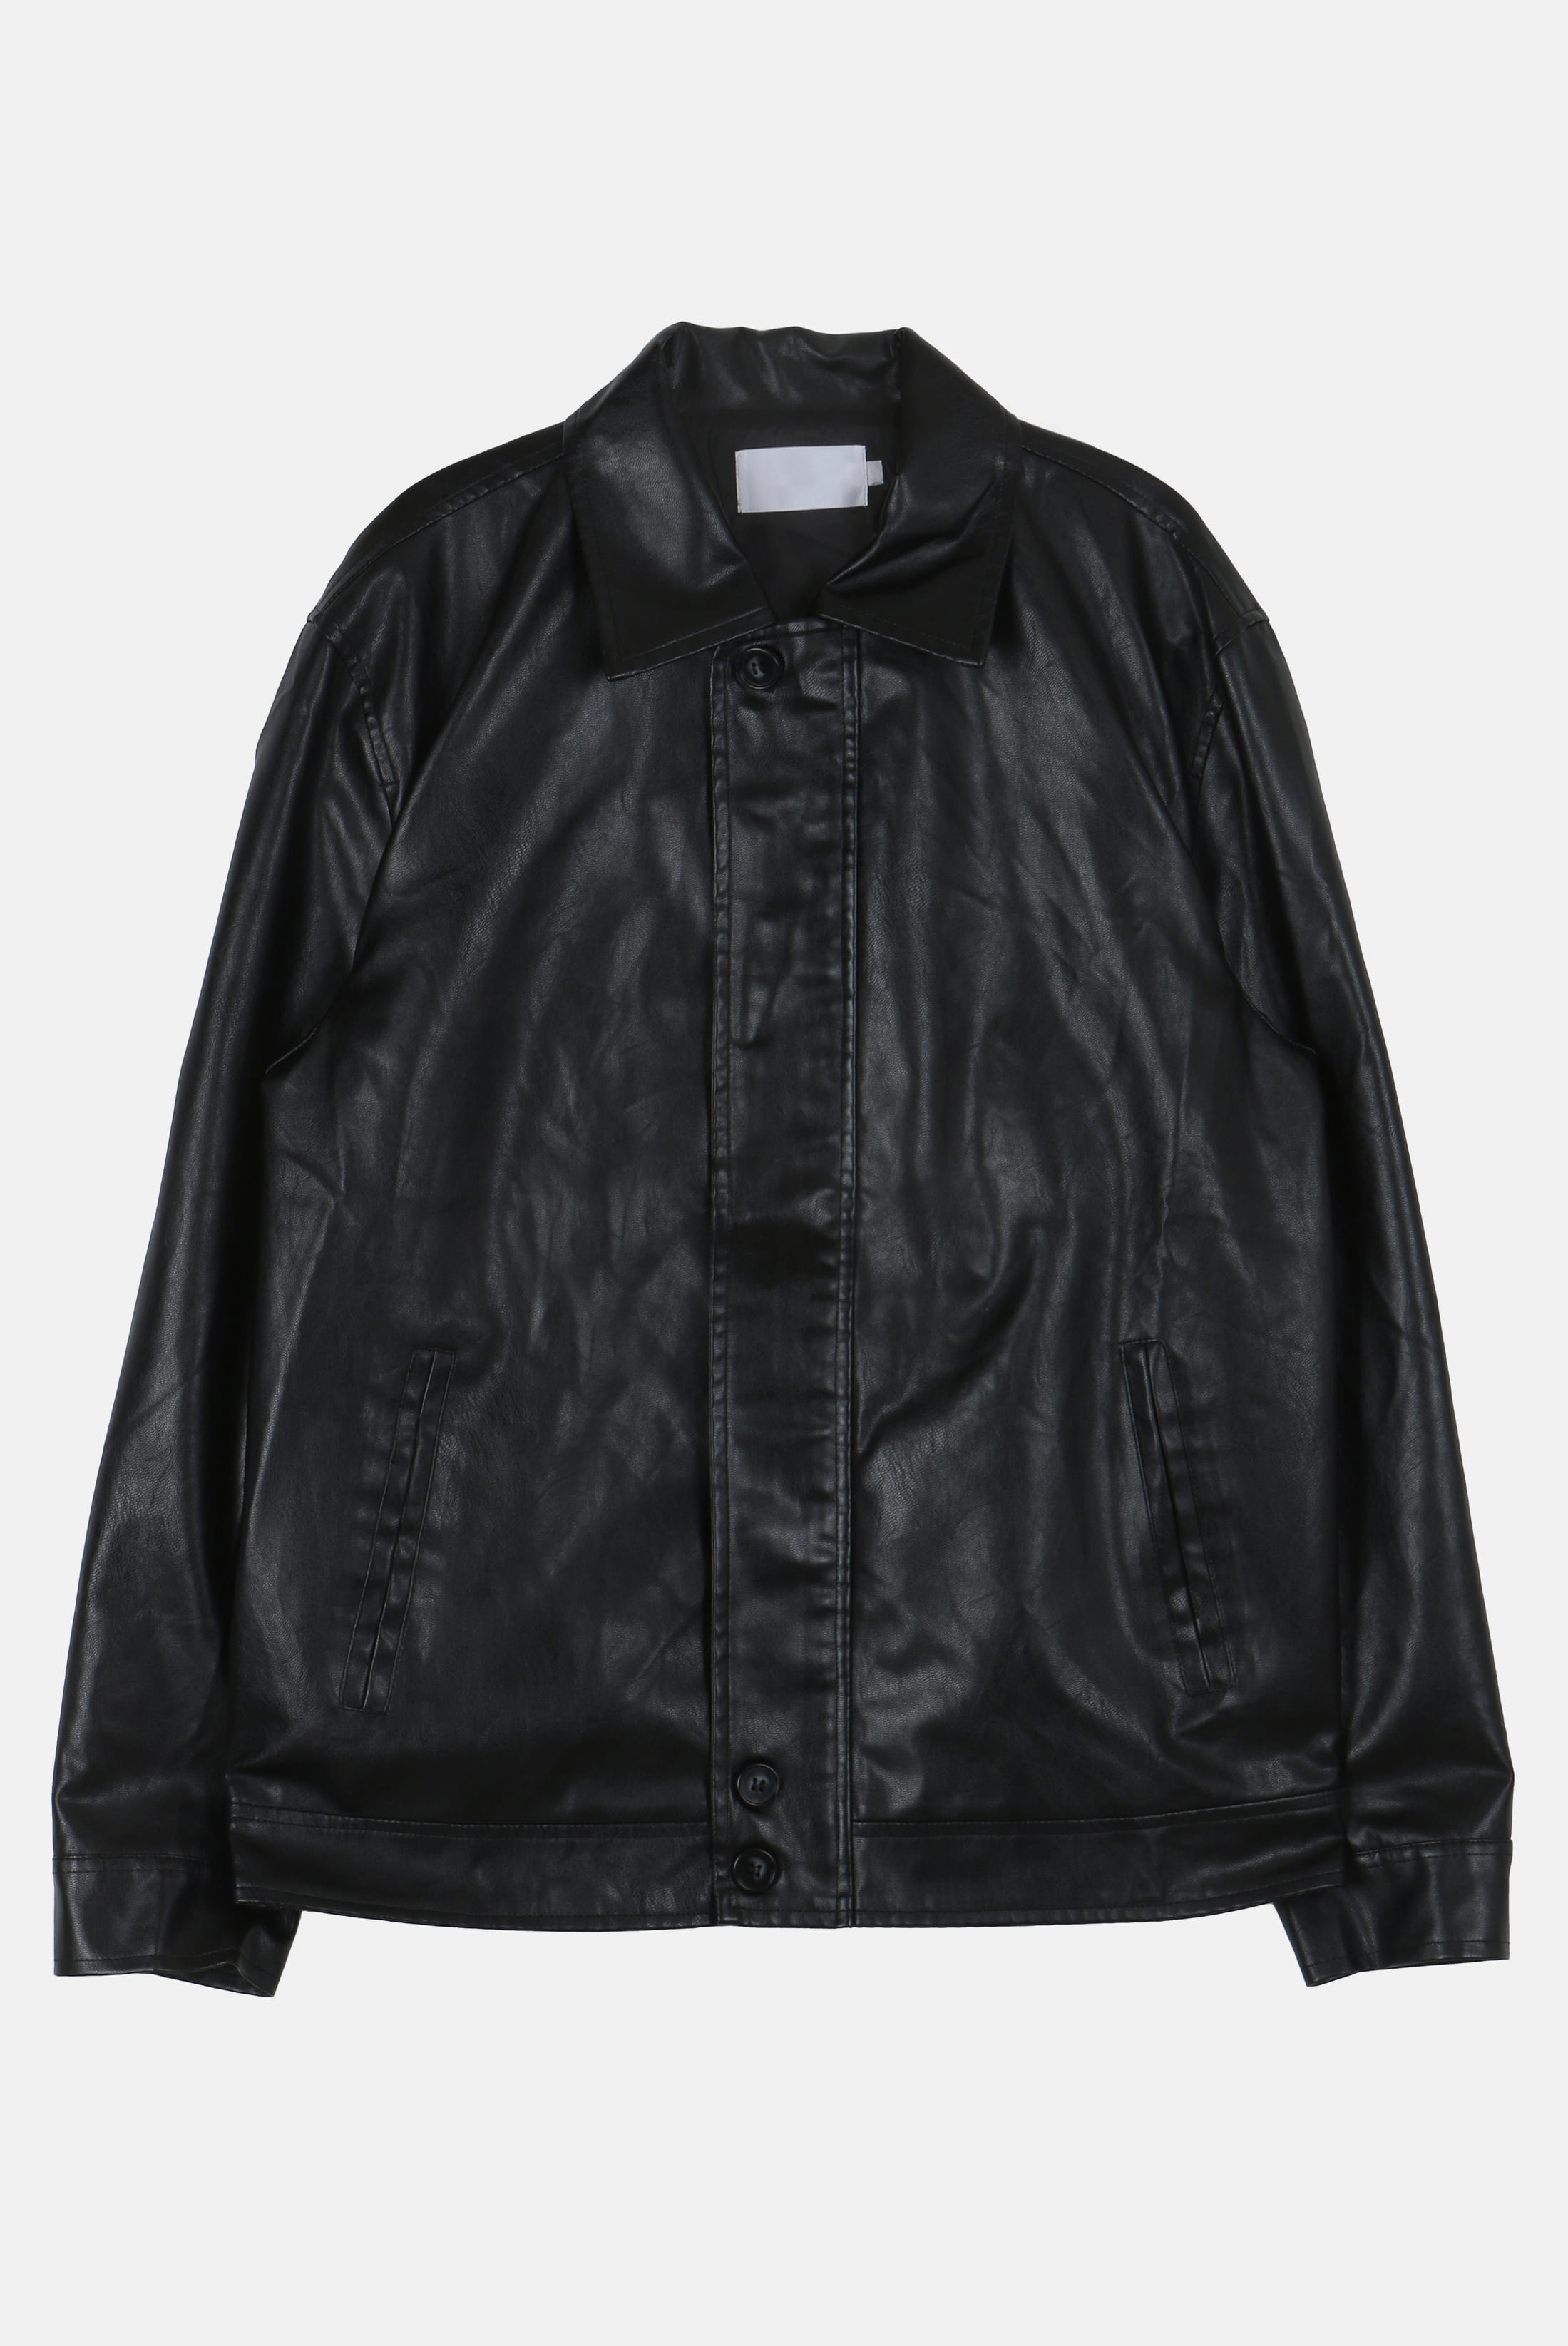 Simple_Button Leather_Jacket [SALE 20%]